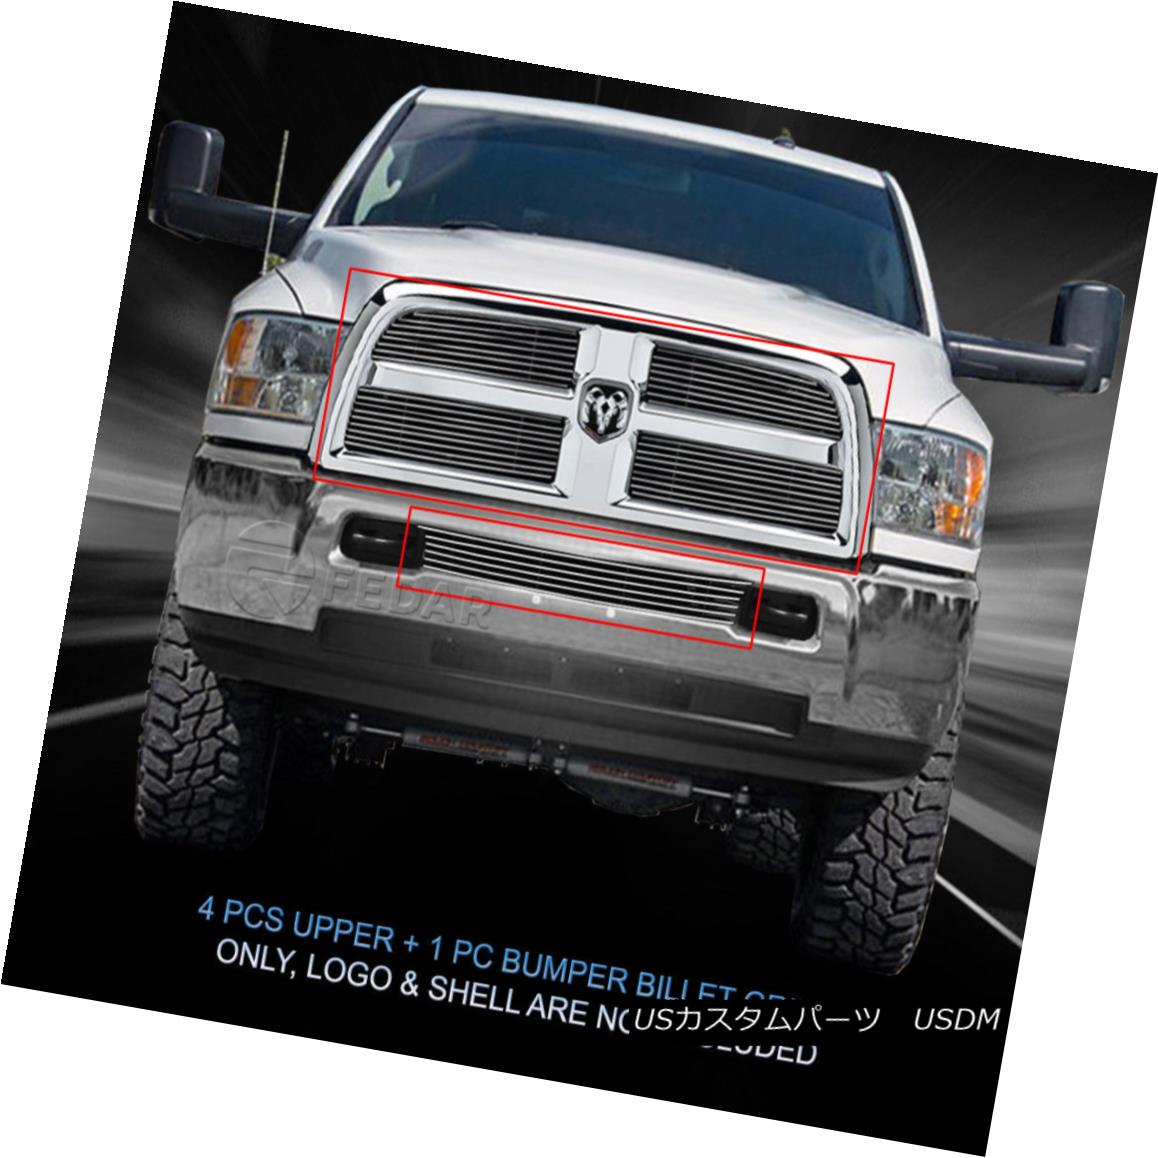 グリル Fedar Fits 2013-2017 Dodge Ram 2500/3500 Polished Billet Grille Combo Insert Fedar Fit 2013-2017 Dodge Ram 2500/3500 Polished Billet Grilleコンボインサート